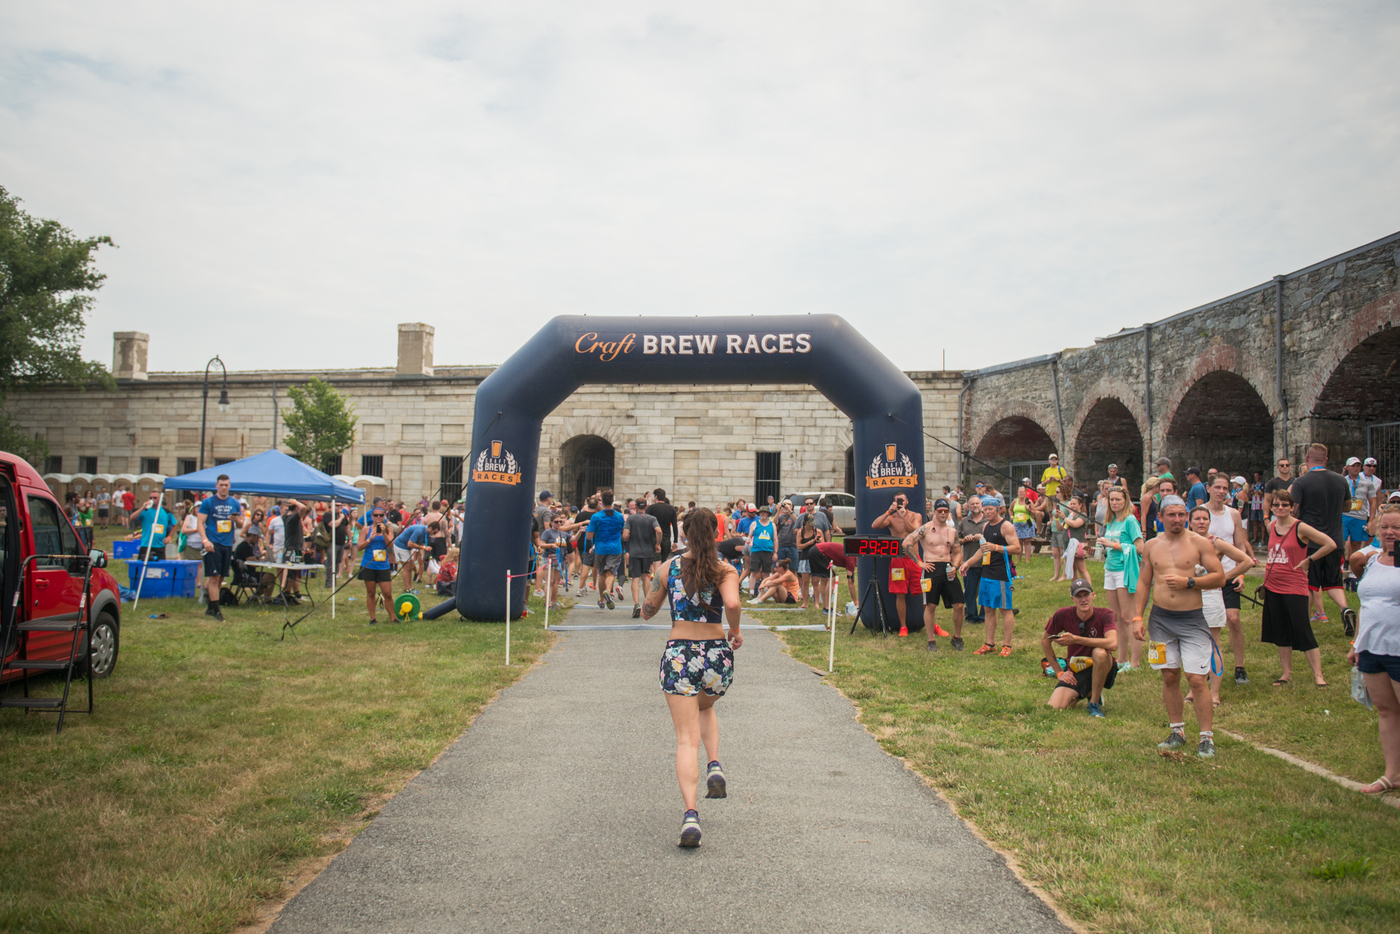 Newport Craft Brew Race